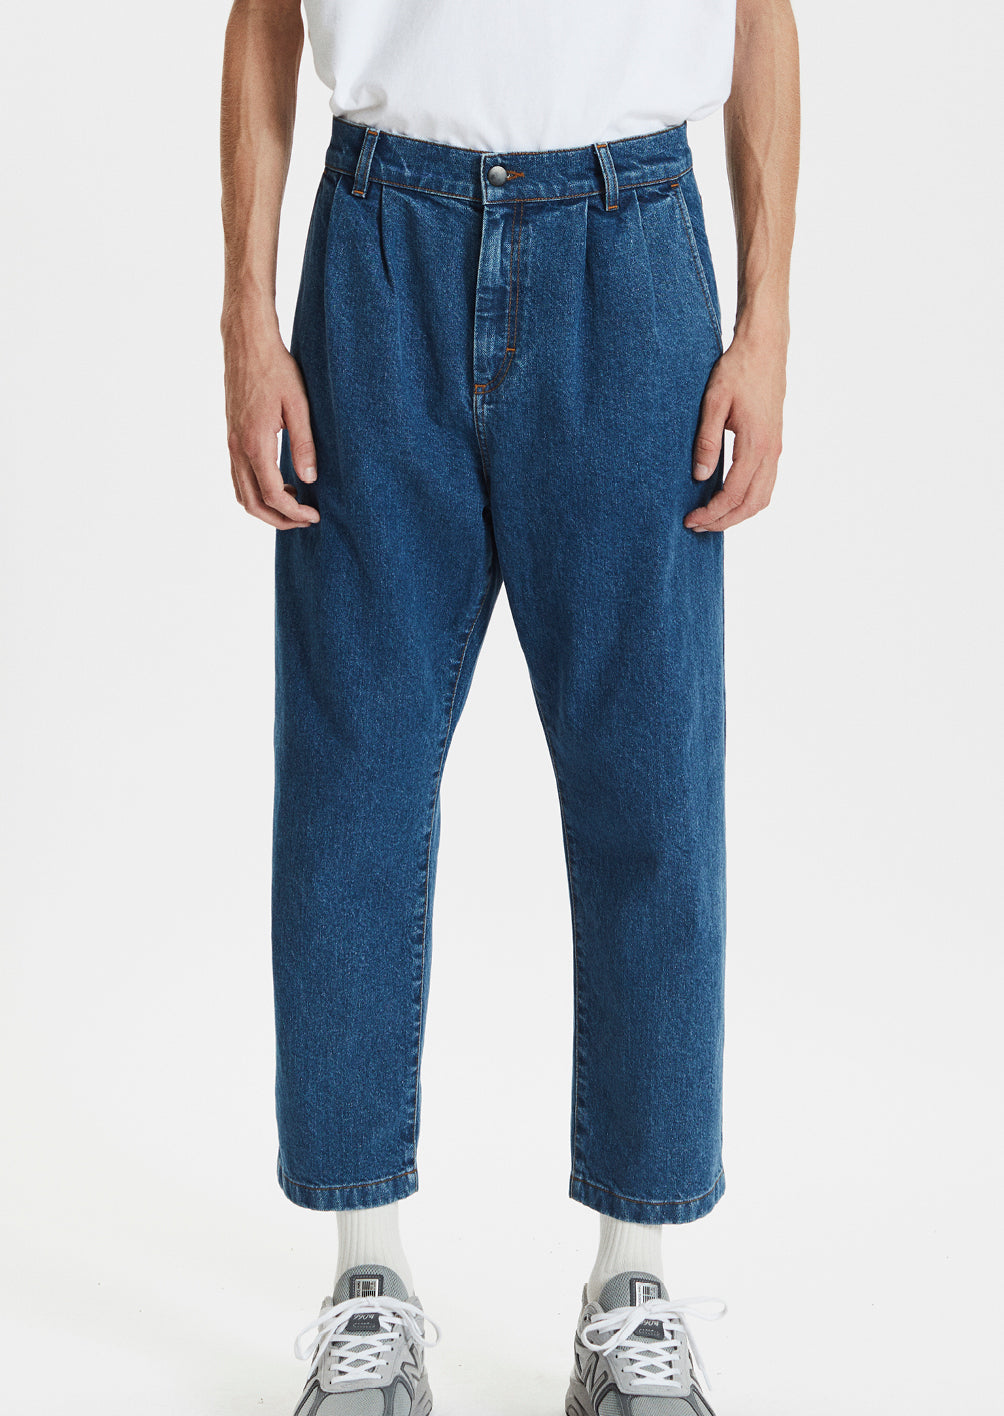 CROPPED JEANS - WASHED BLUE